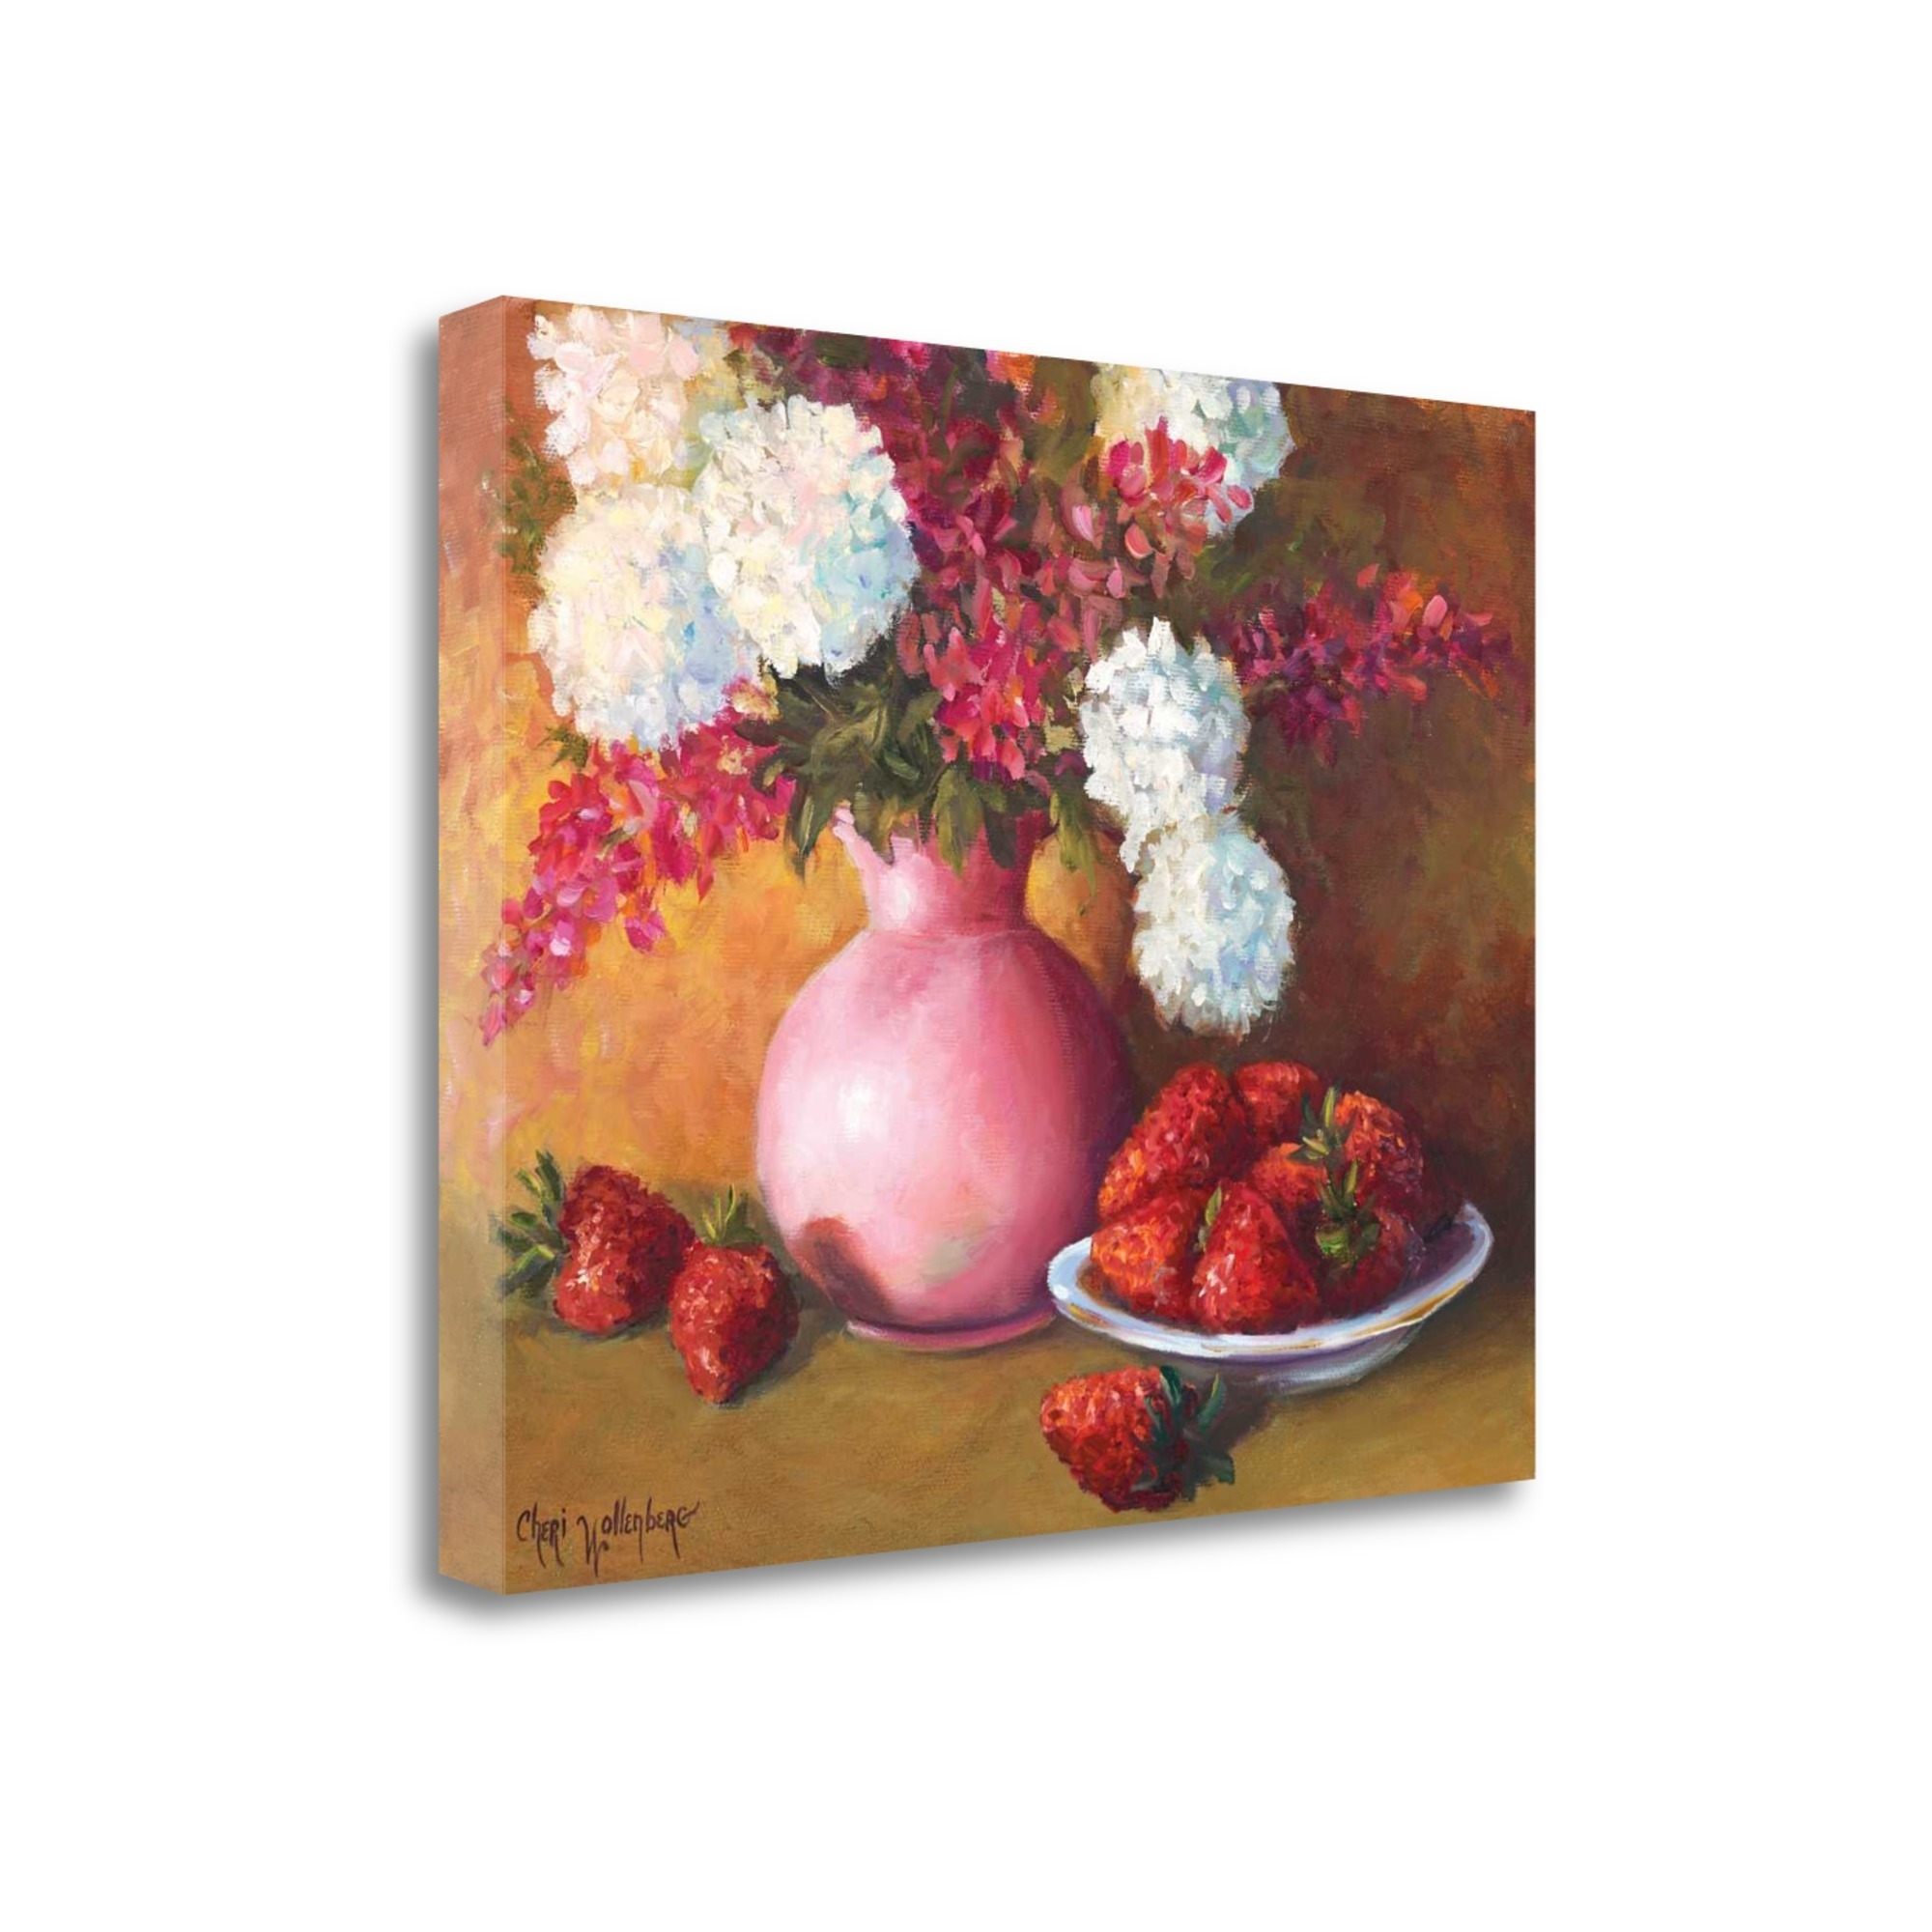 "Pink Vase And Strawberries By Cheri Wollenberg, 32"" x 25\"" Fine Art Giclee Print on Gallery Wrap Canvas, Ready to Hang"